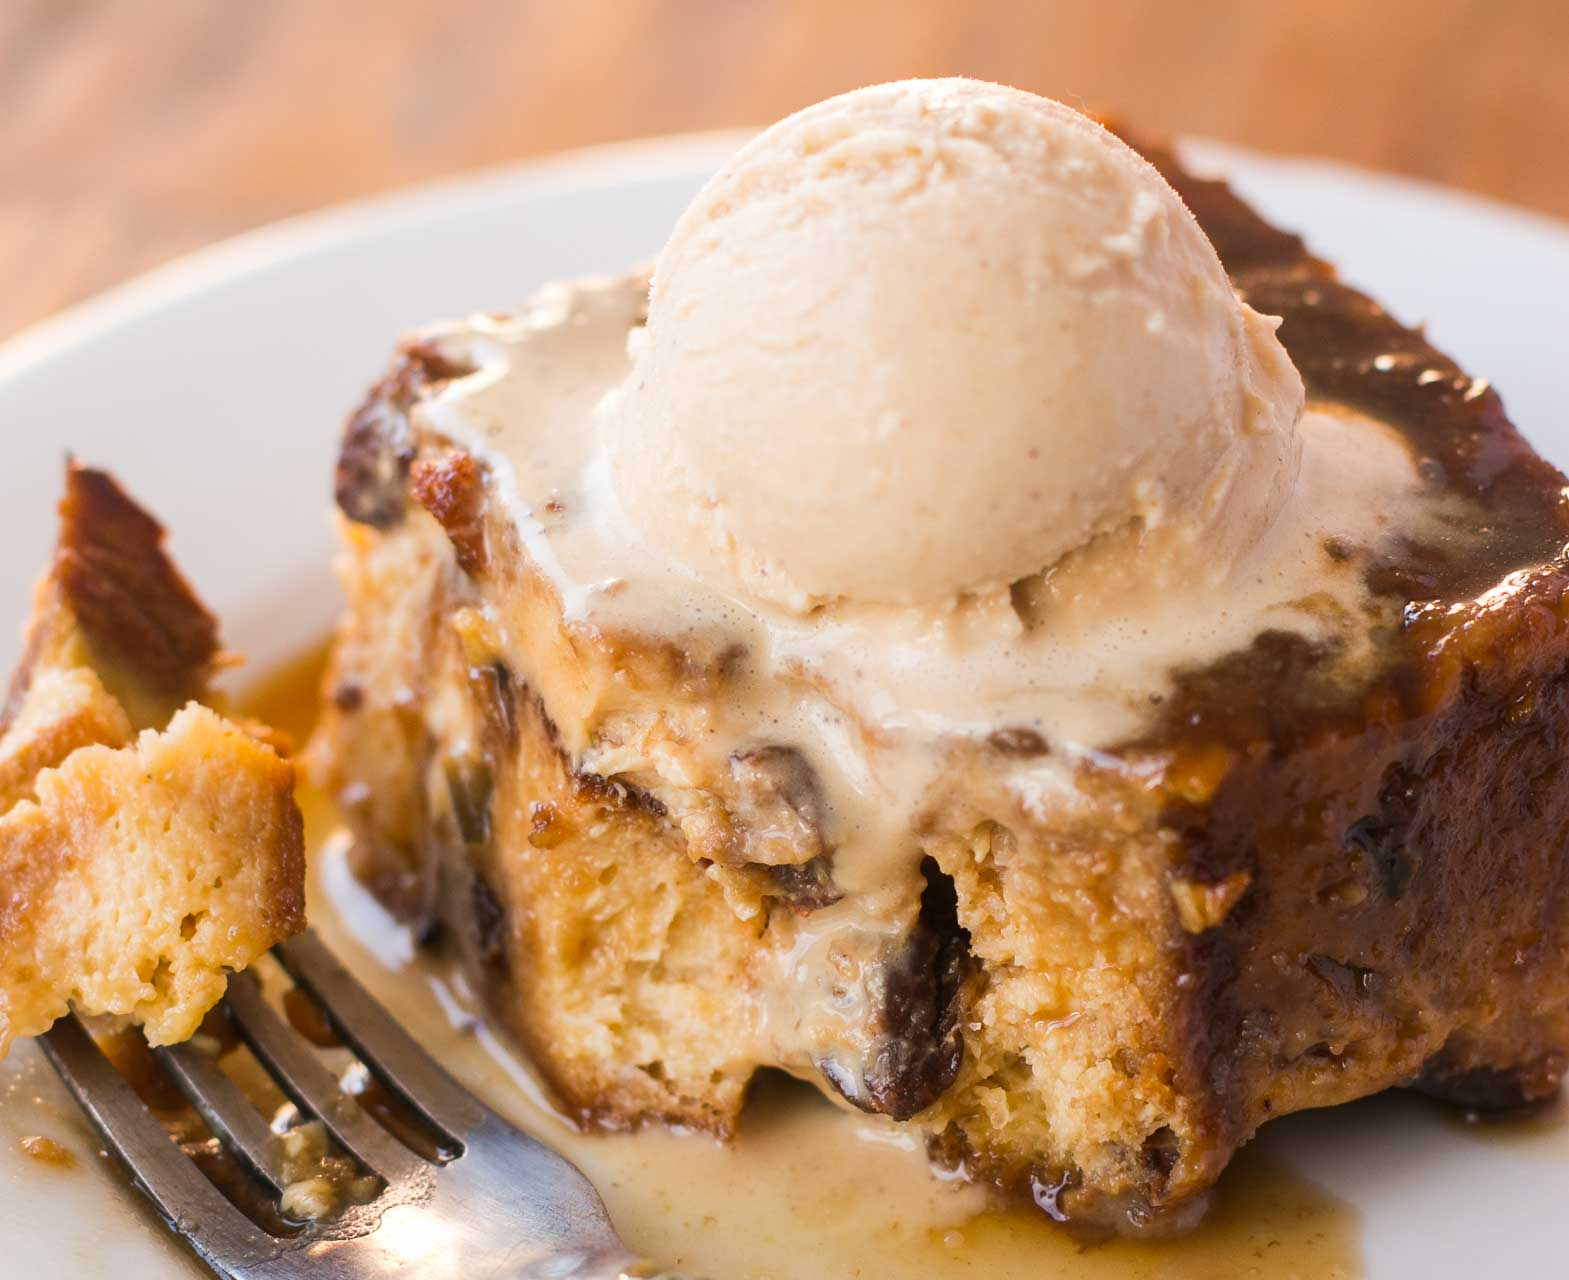 https://www.davidlebovitz.com/caramelized-panettone-bread-pudding-recipe/